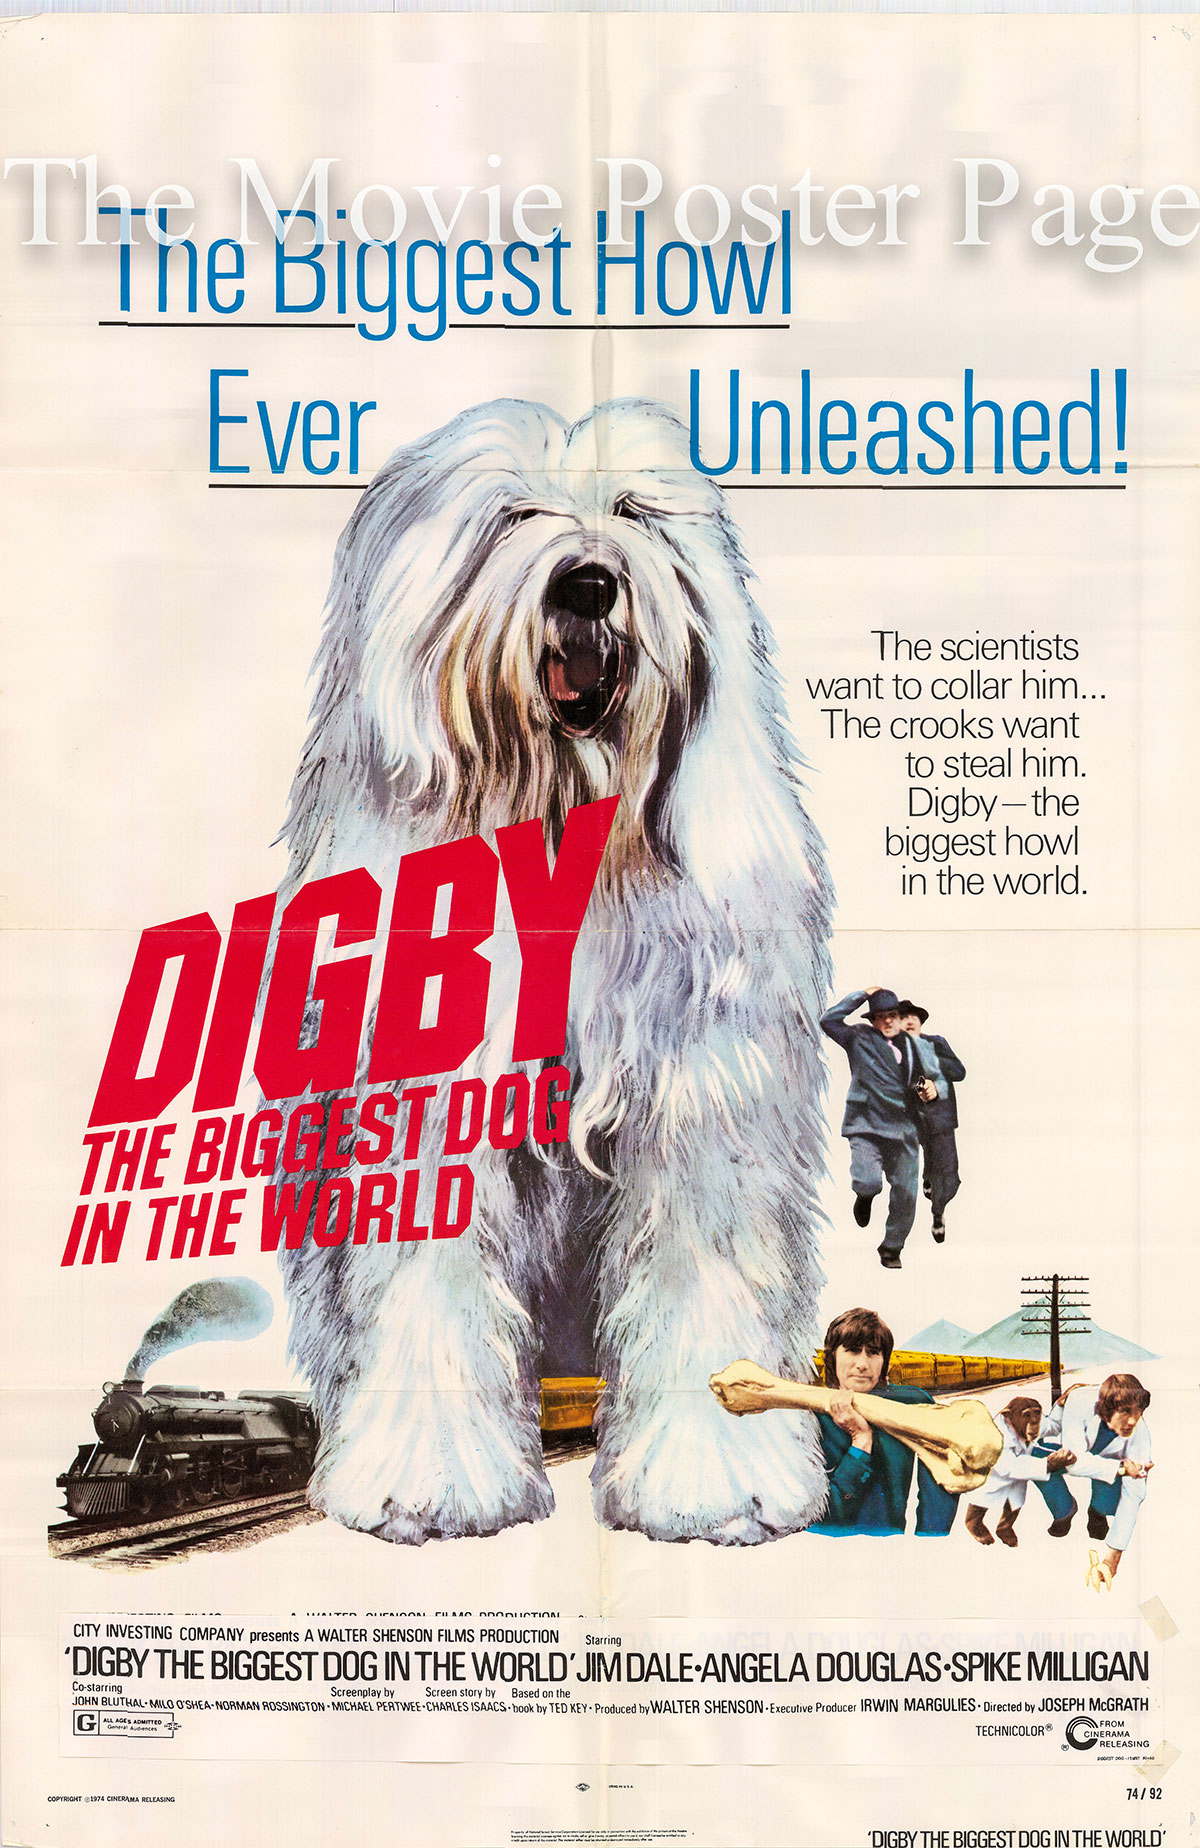 Pictured is a US one-sheet poster for the 1974 Joseph McGrath film Digby, the Biggest Dog in the World starring Jim Dale as Jeff Eldon.